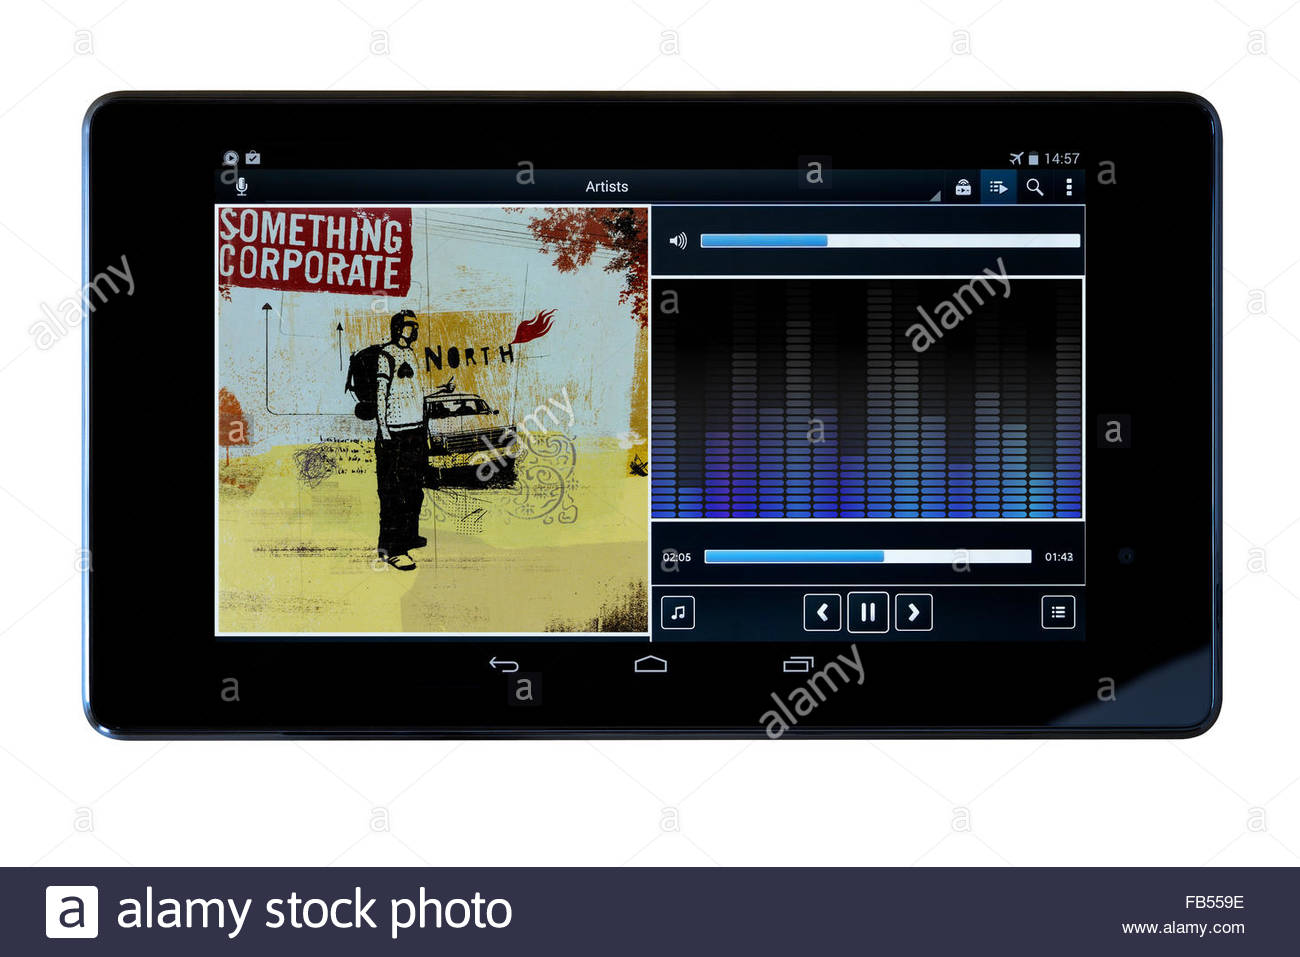 Something Corporate 2003 album North, MP3 album art on PC tablet, England - Stock Image